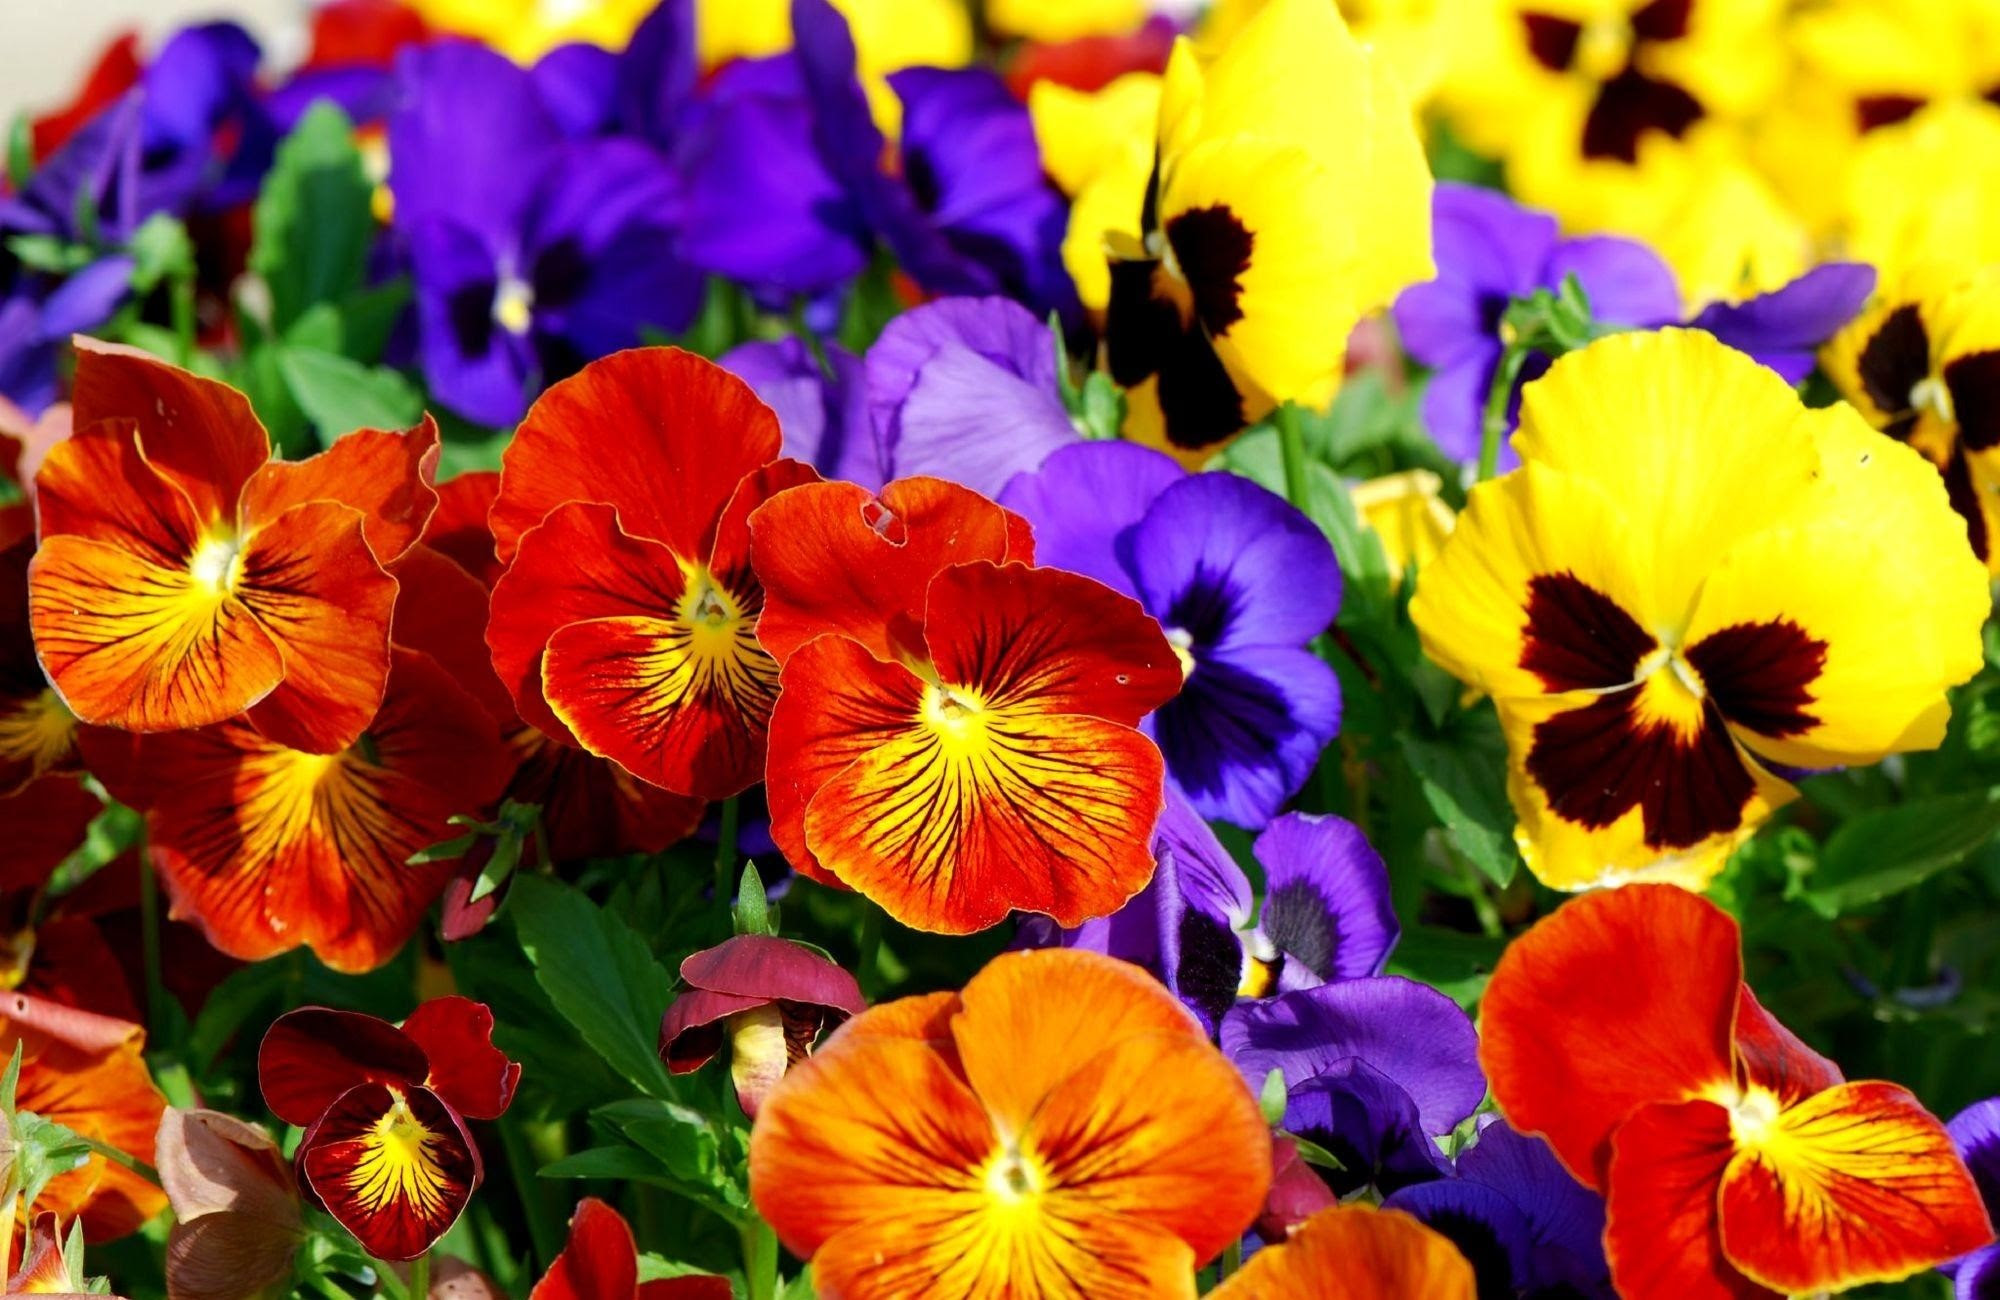 Pansies Flowers Bright Colorful Wallpaper And Background